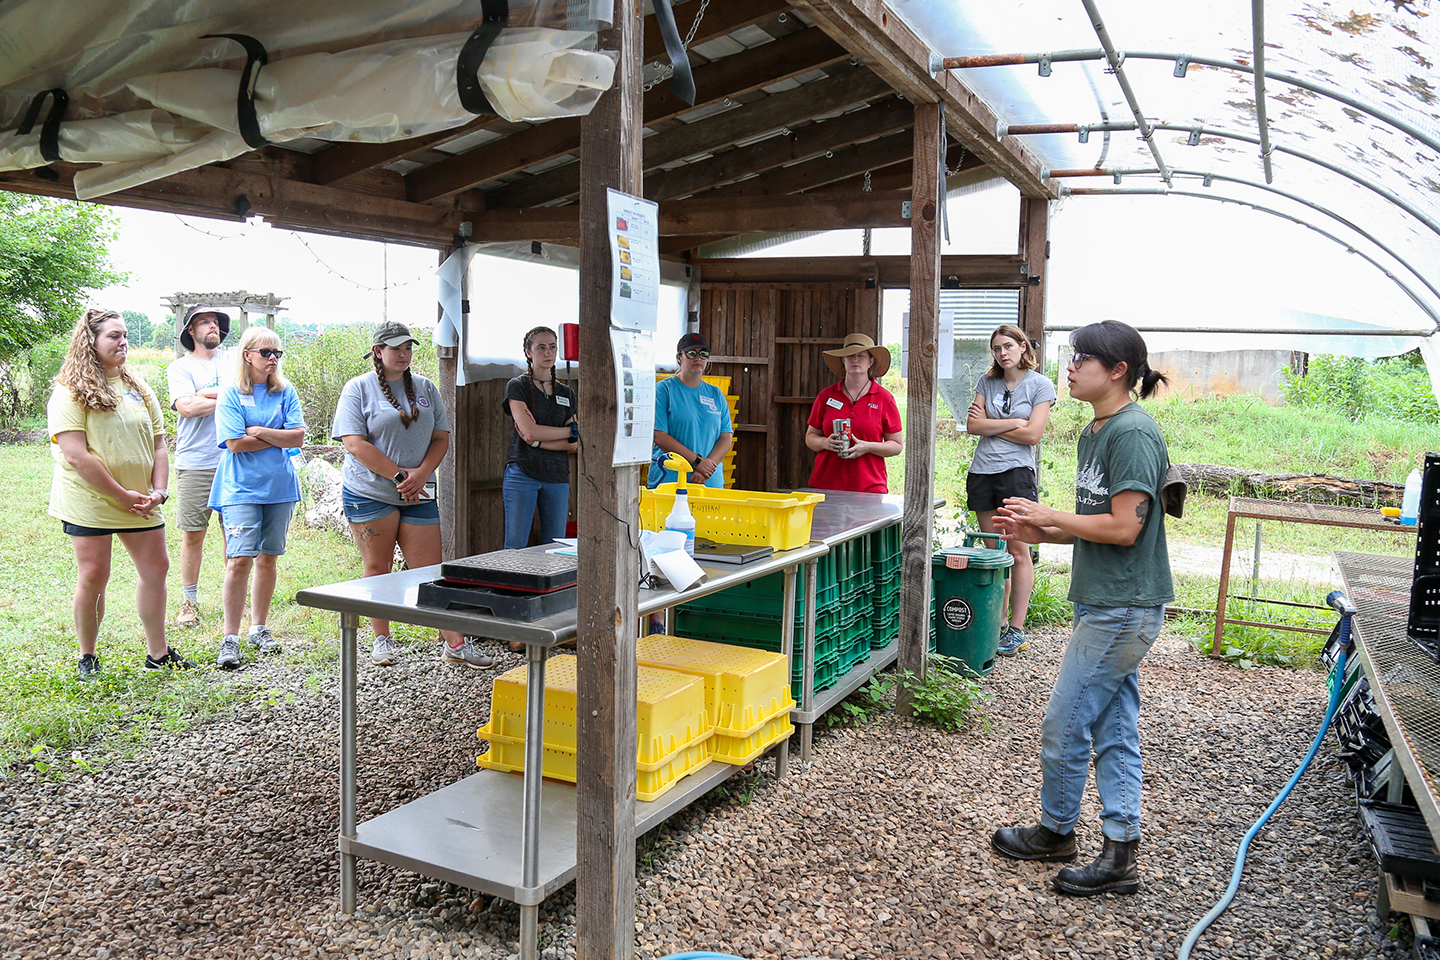 Teachers stand by a metal table under a shed while learning about produce